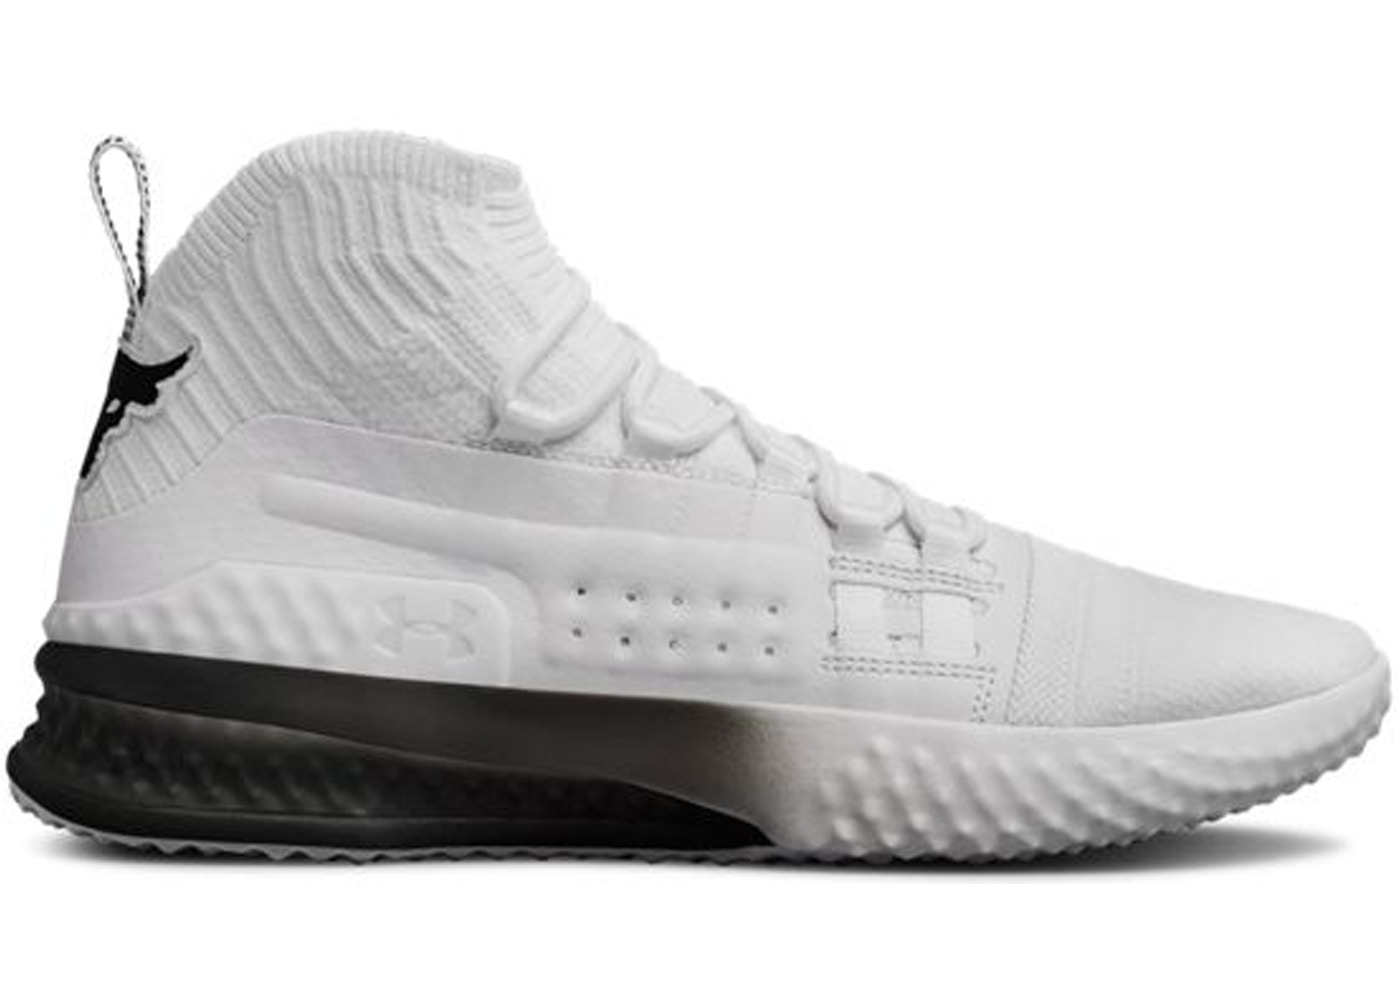 outlet store 9917d 970f9 Under Armour The Rock Delta White Black 2.0